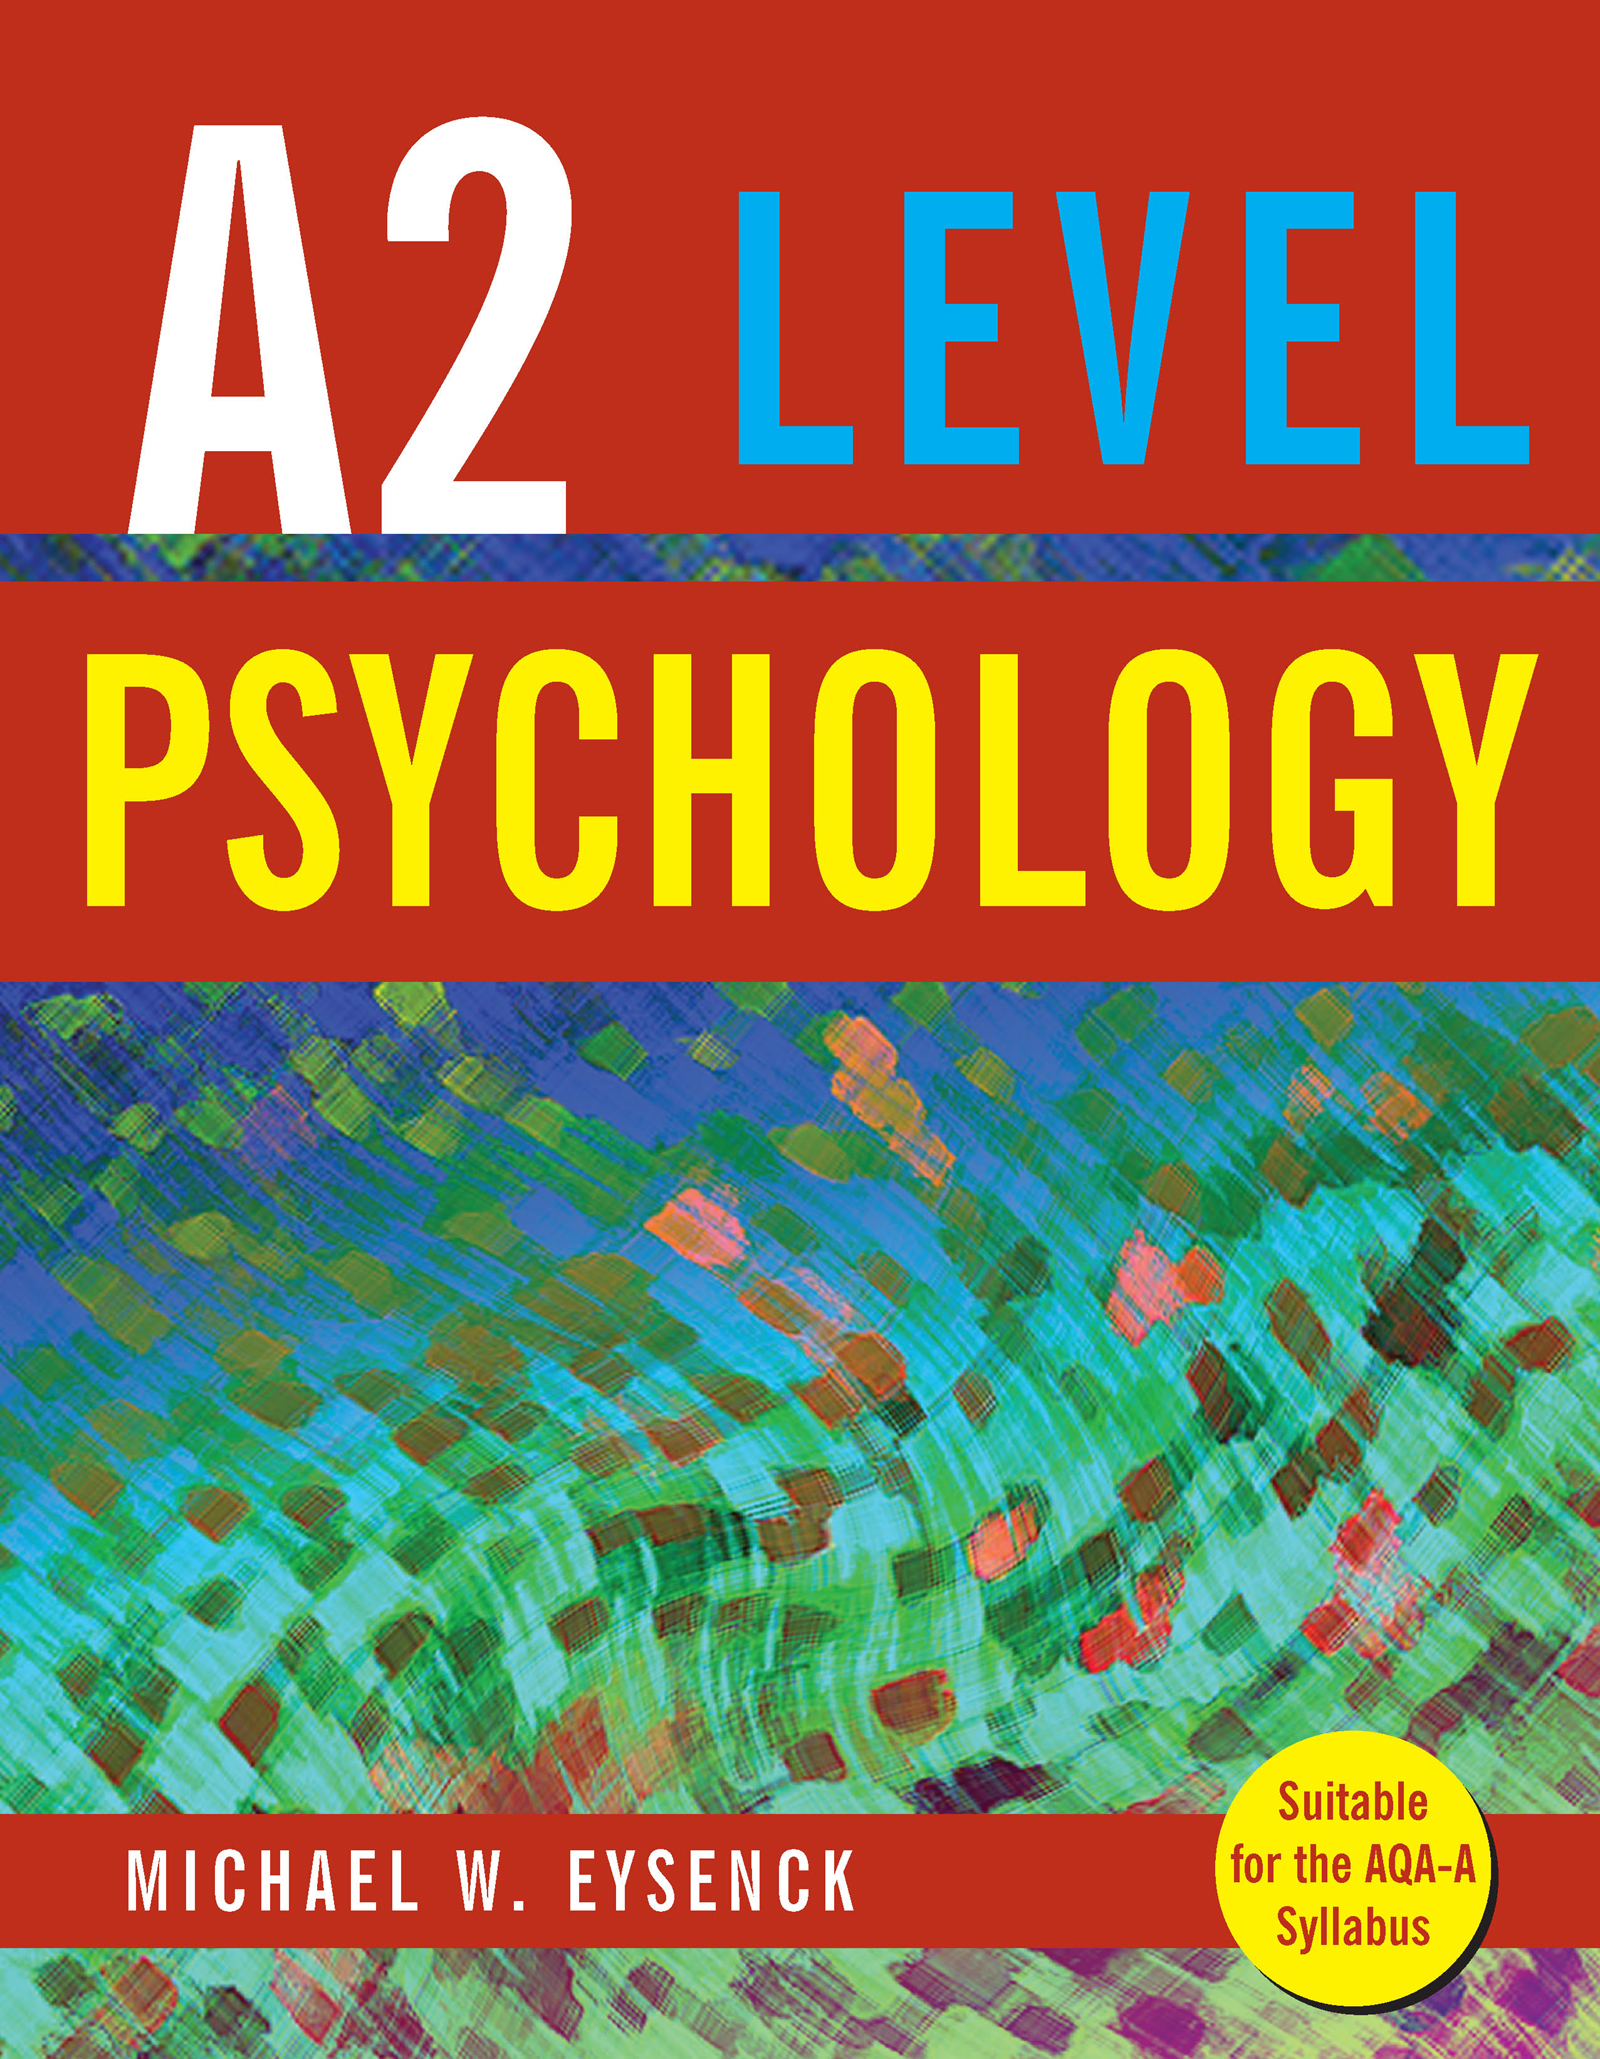 A2 Level Psychology: 1st Edition (Paperback) book cover